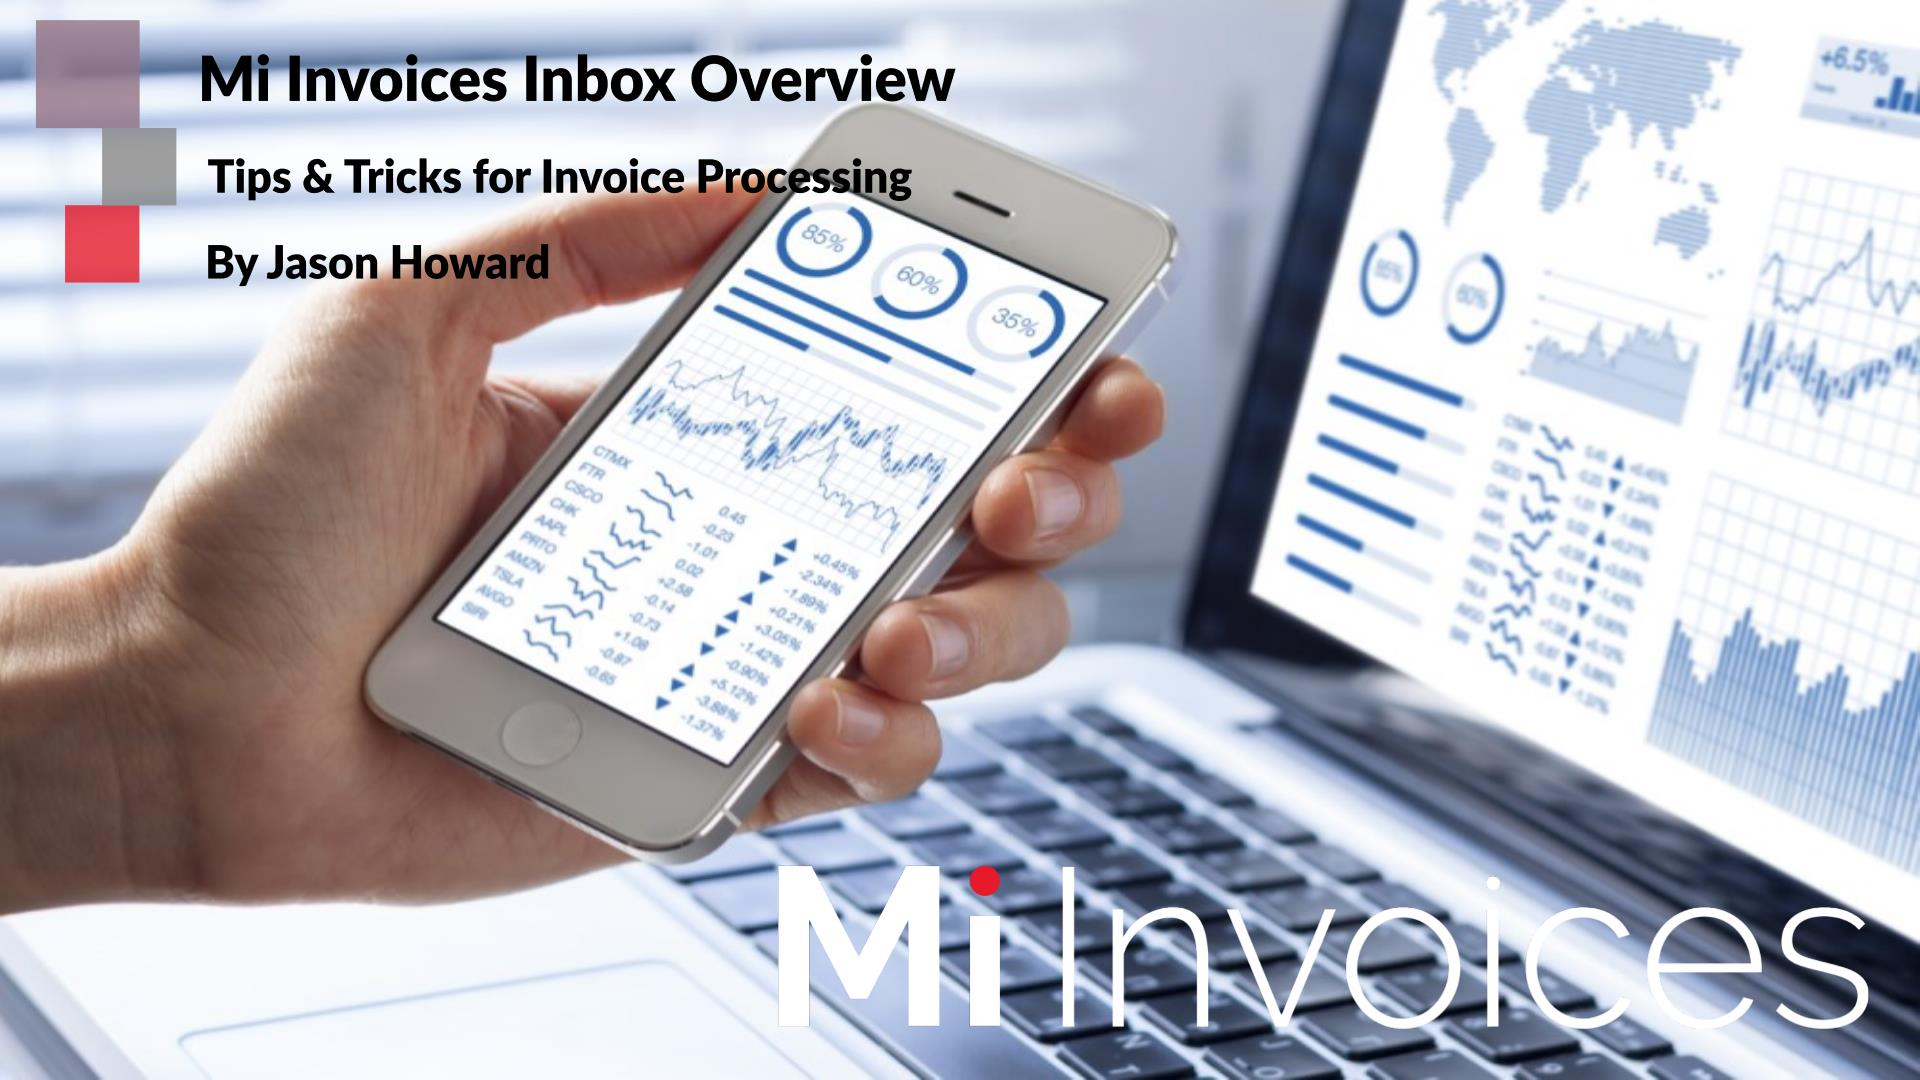 Mi Invoices Tips and Tricks Inbox Overview